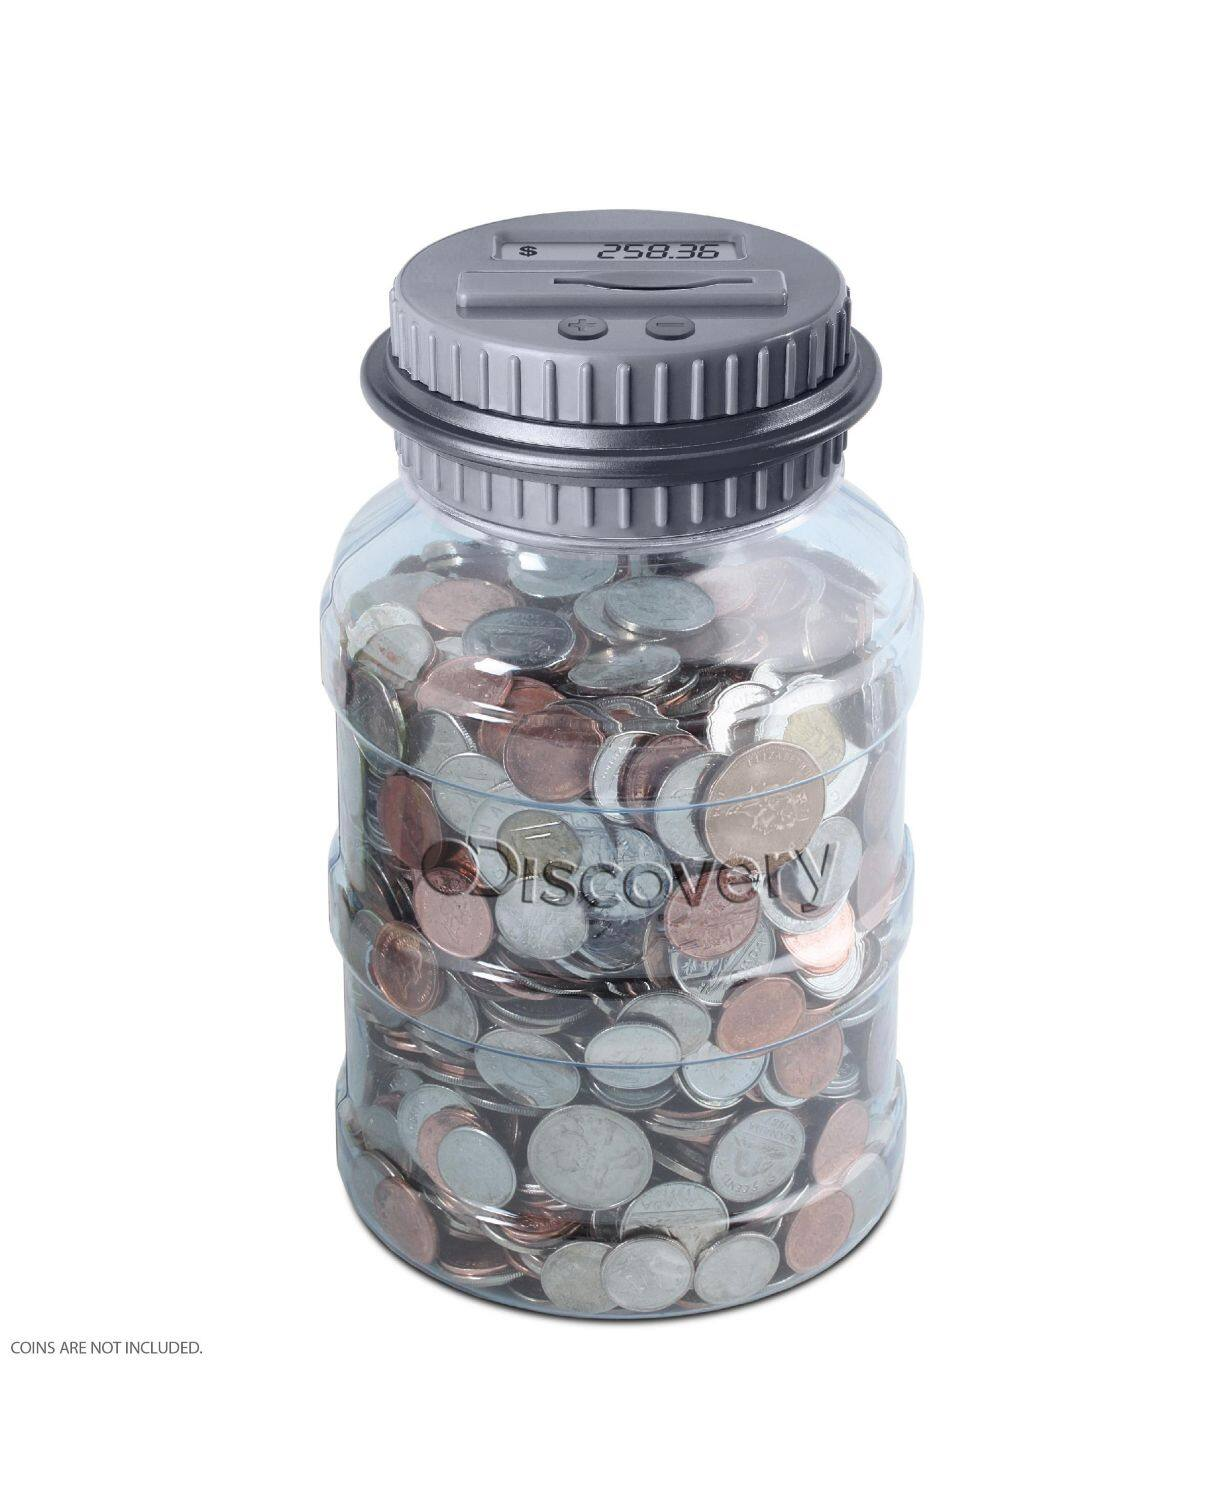 Discovery Kids Coin Counting Jar $7.99, Sharper Image Toy RC Monster Spinning Car $9.99, Bear or Snowman Lovey $6.30 at Macy's (free shipping on $25)